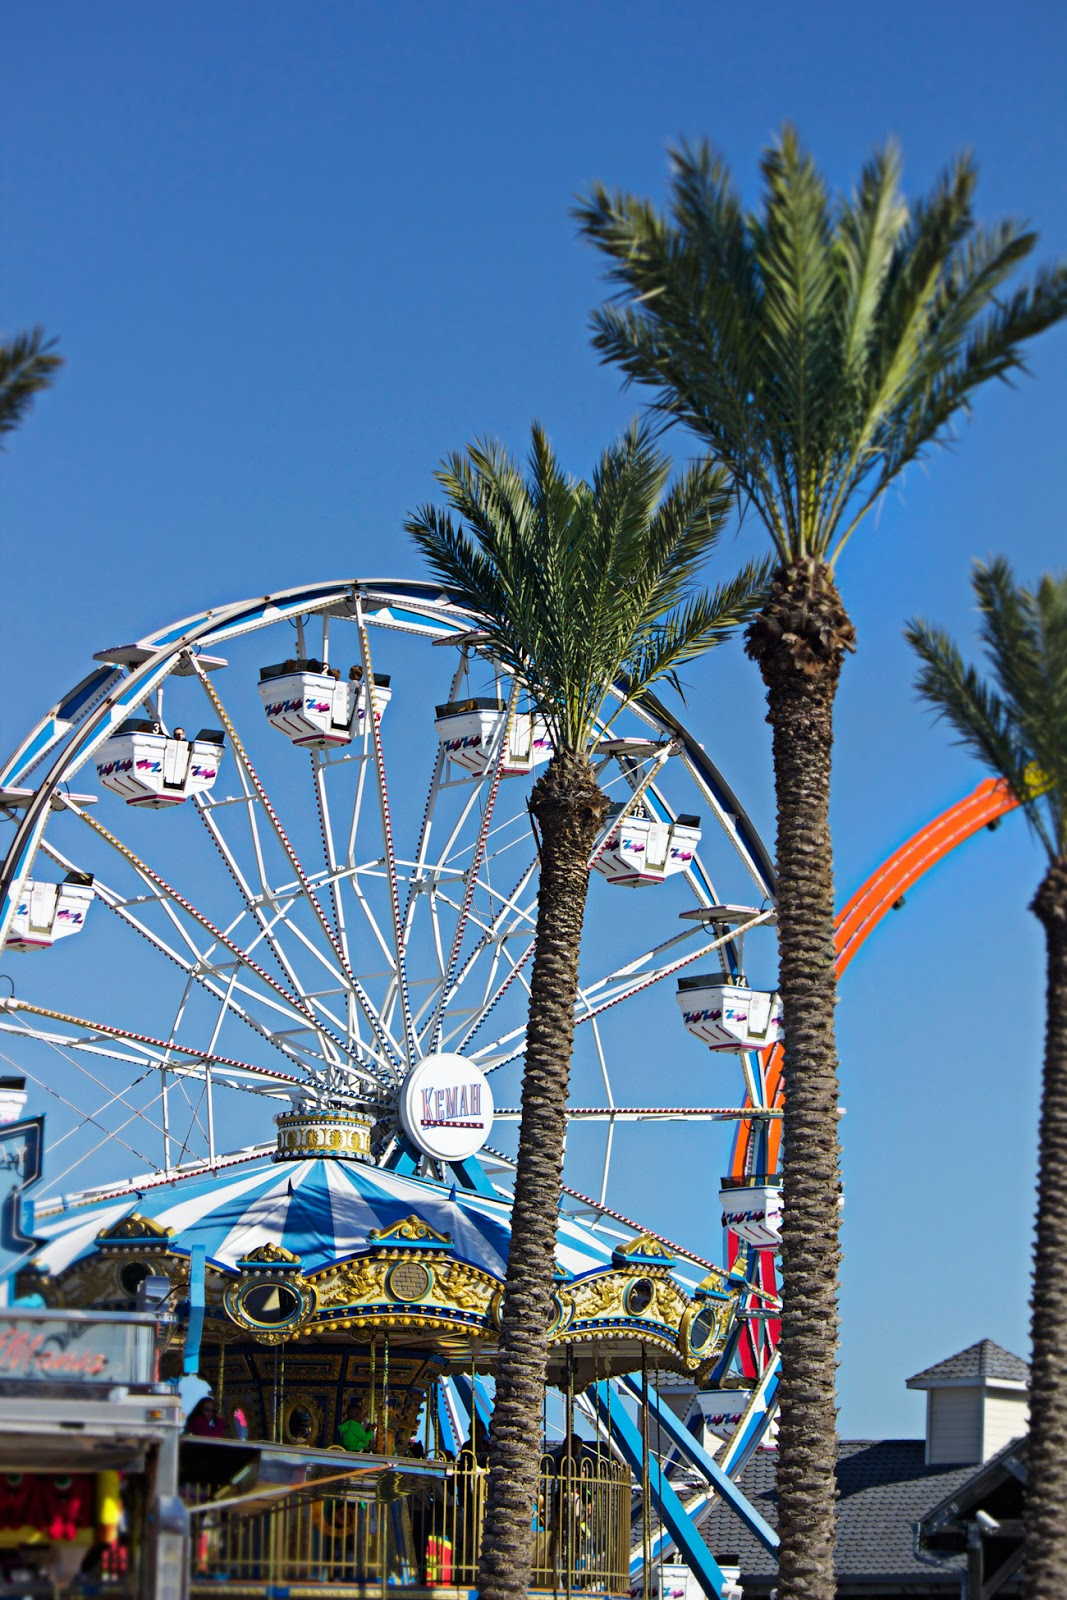 baroque ferris wheel with palm trees